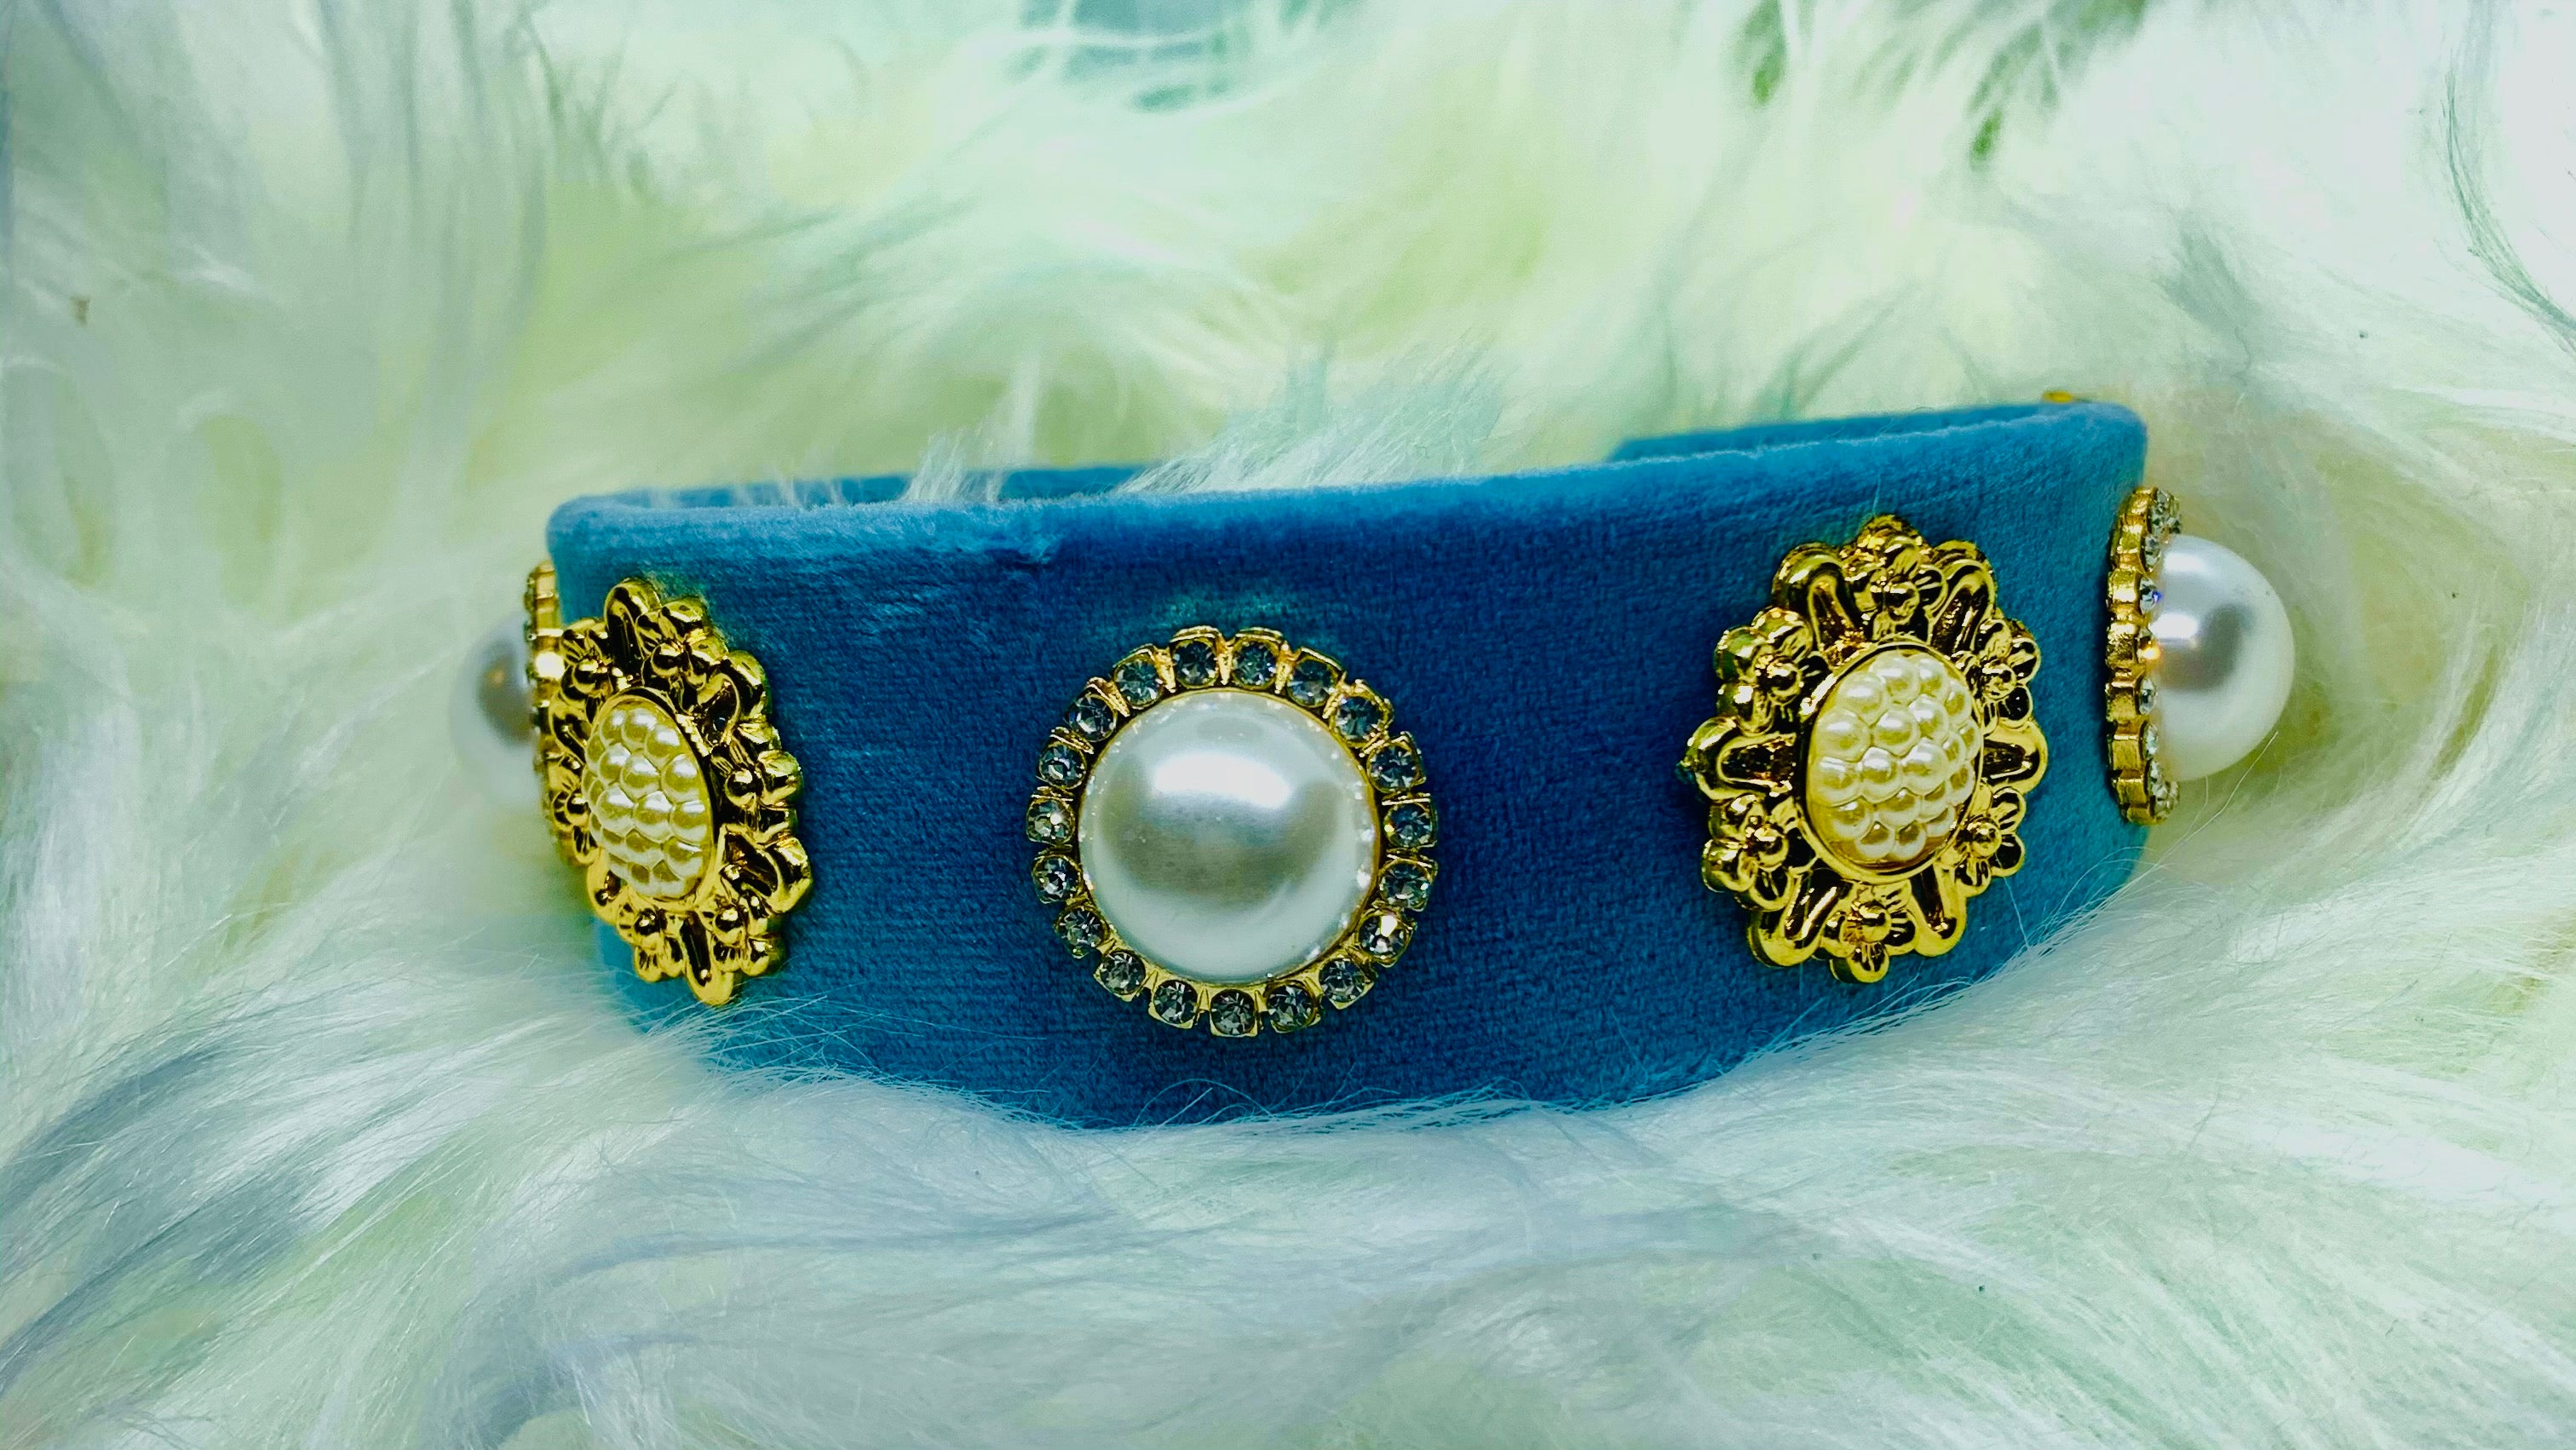 BGV BLING HEADBANDS